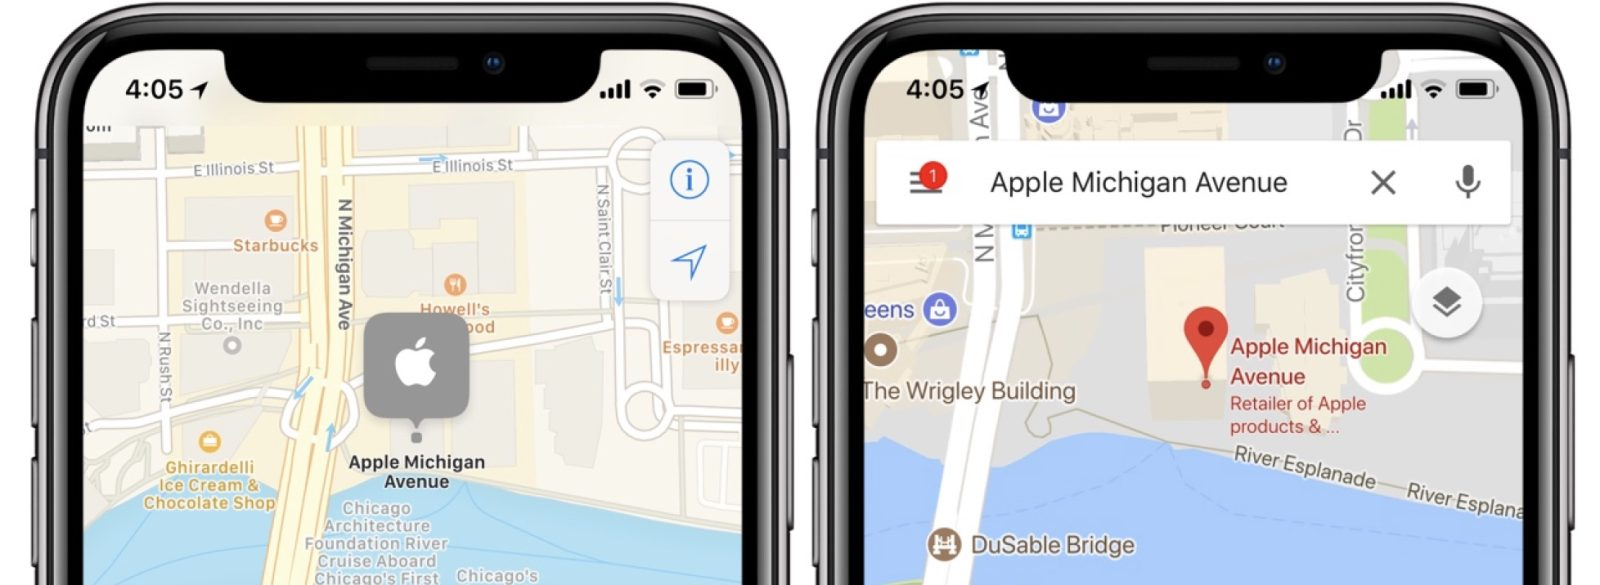 As Apple plots major Maps overhaul, what mapping app do you ... on google maps error, google maps ipad, google hangouts app iphone, google maps mobile street view, google maps dublin, apps on iphone, smartphone iphone, google maps sign, google maps icon, google maps theme, google maps on phone, google docs app iphone, google g logo red, google earth swastika building, android iphone, google maps street view bloopers, bluetooth iphone, google maps asia countries, google chrome app iphone, travel map apps for iphone,